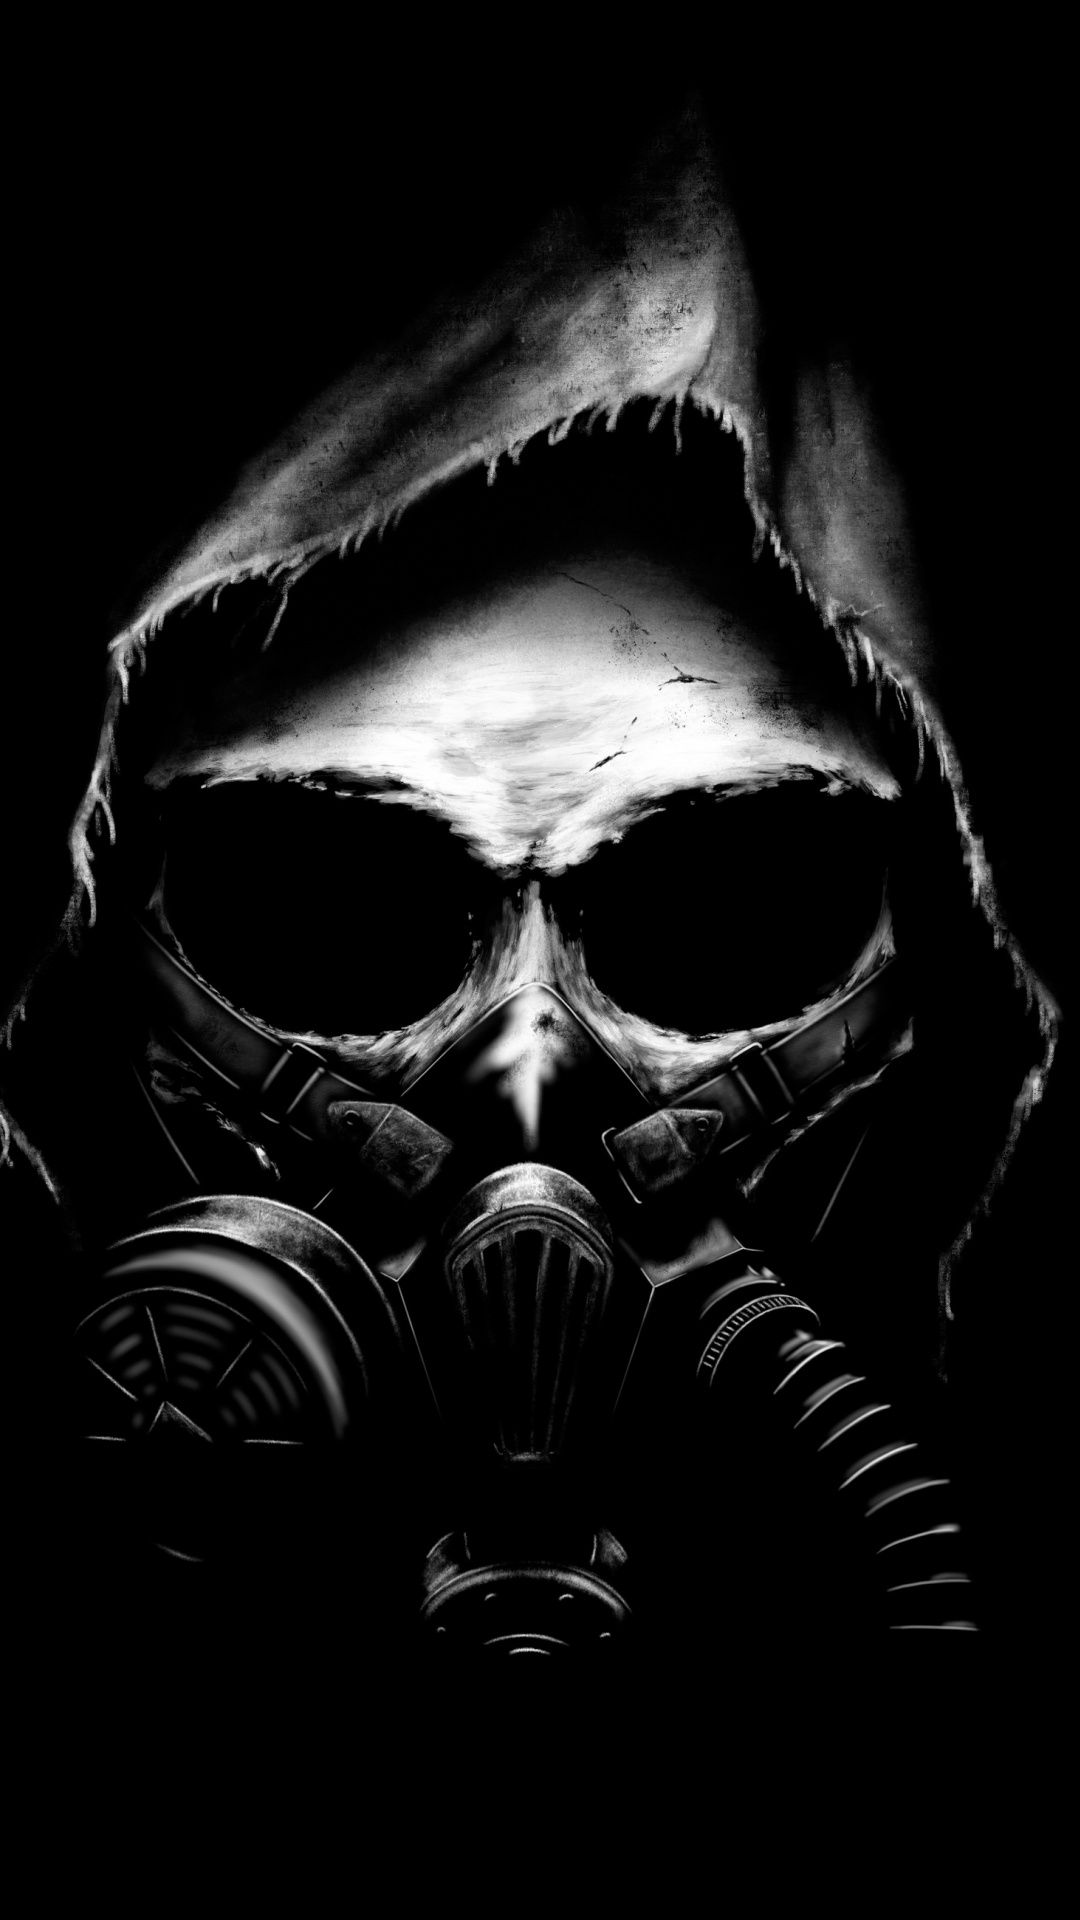 Downaload Apocalyptic, skull, gas mask, dark, art